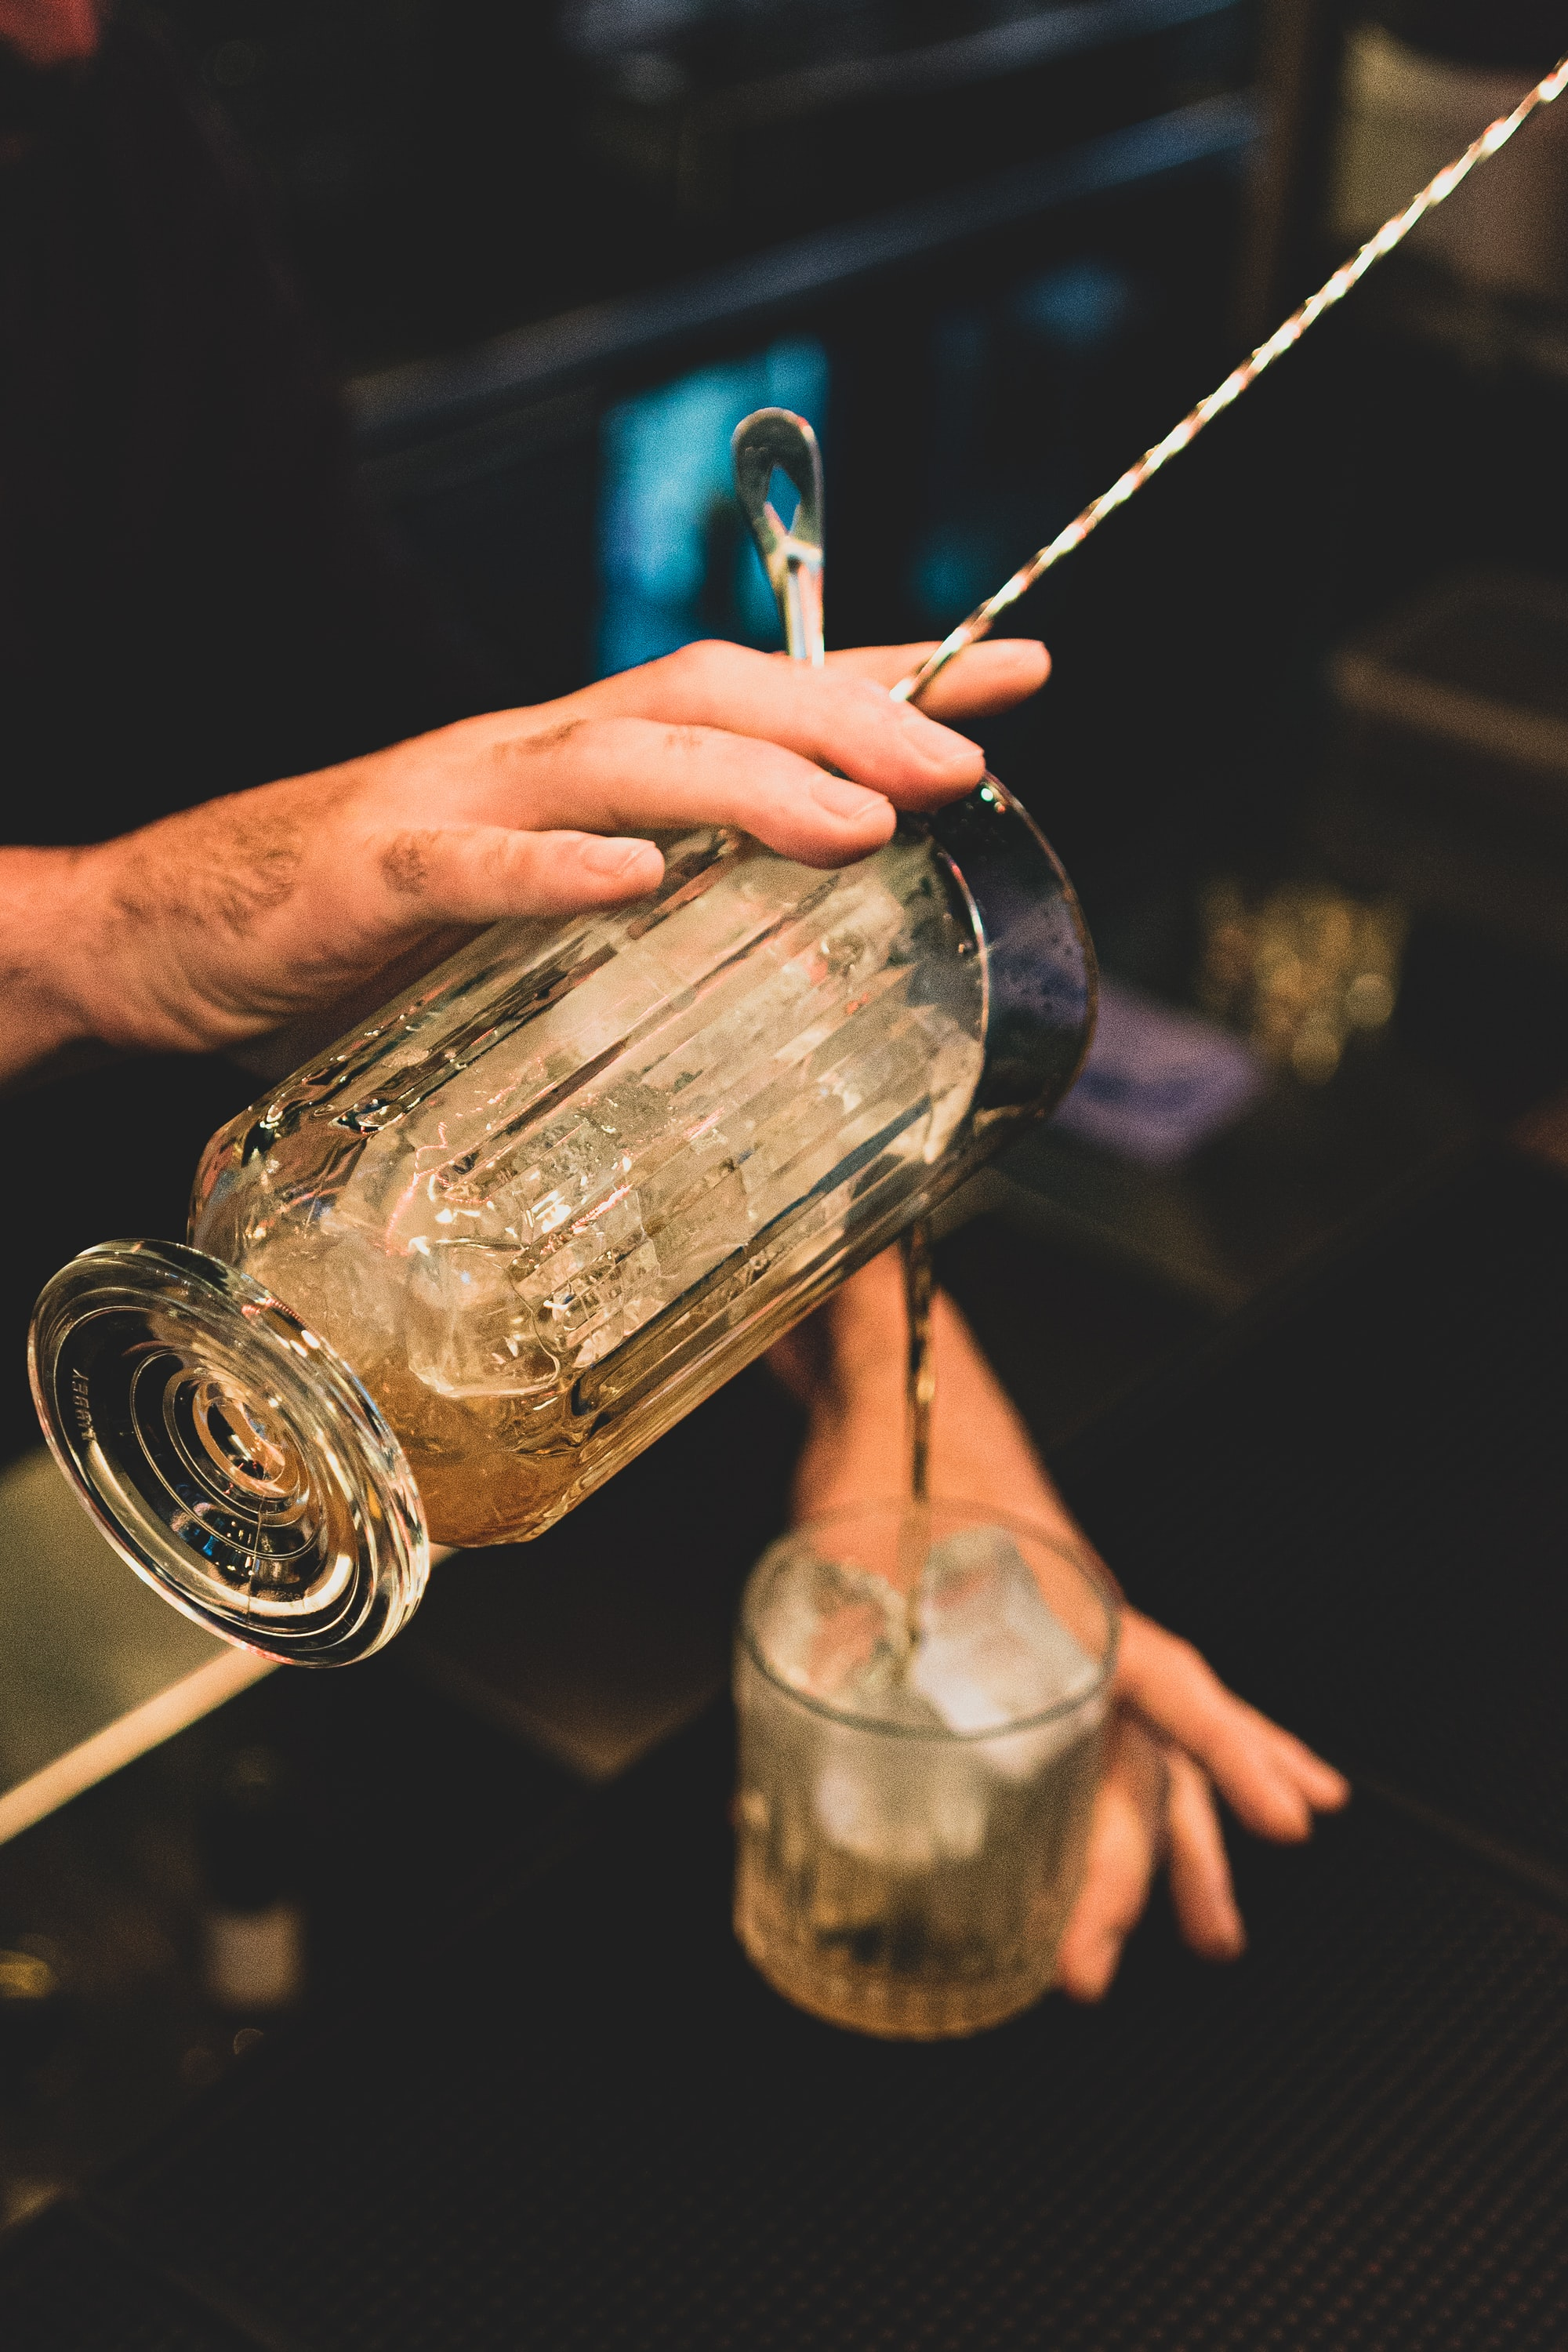 An Ingredient in Startup Mixology's cocktail